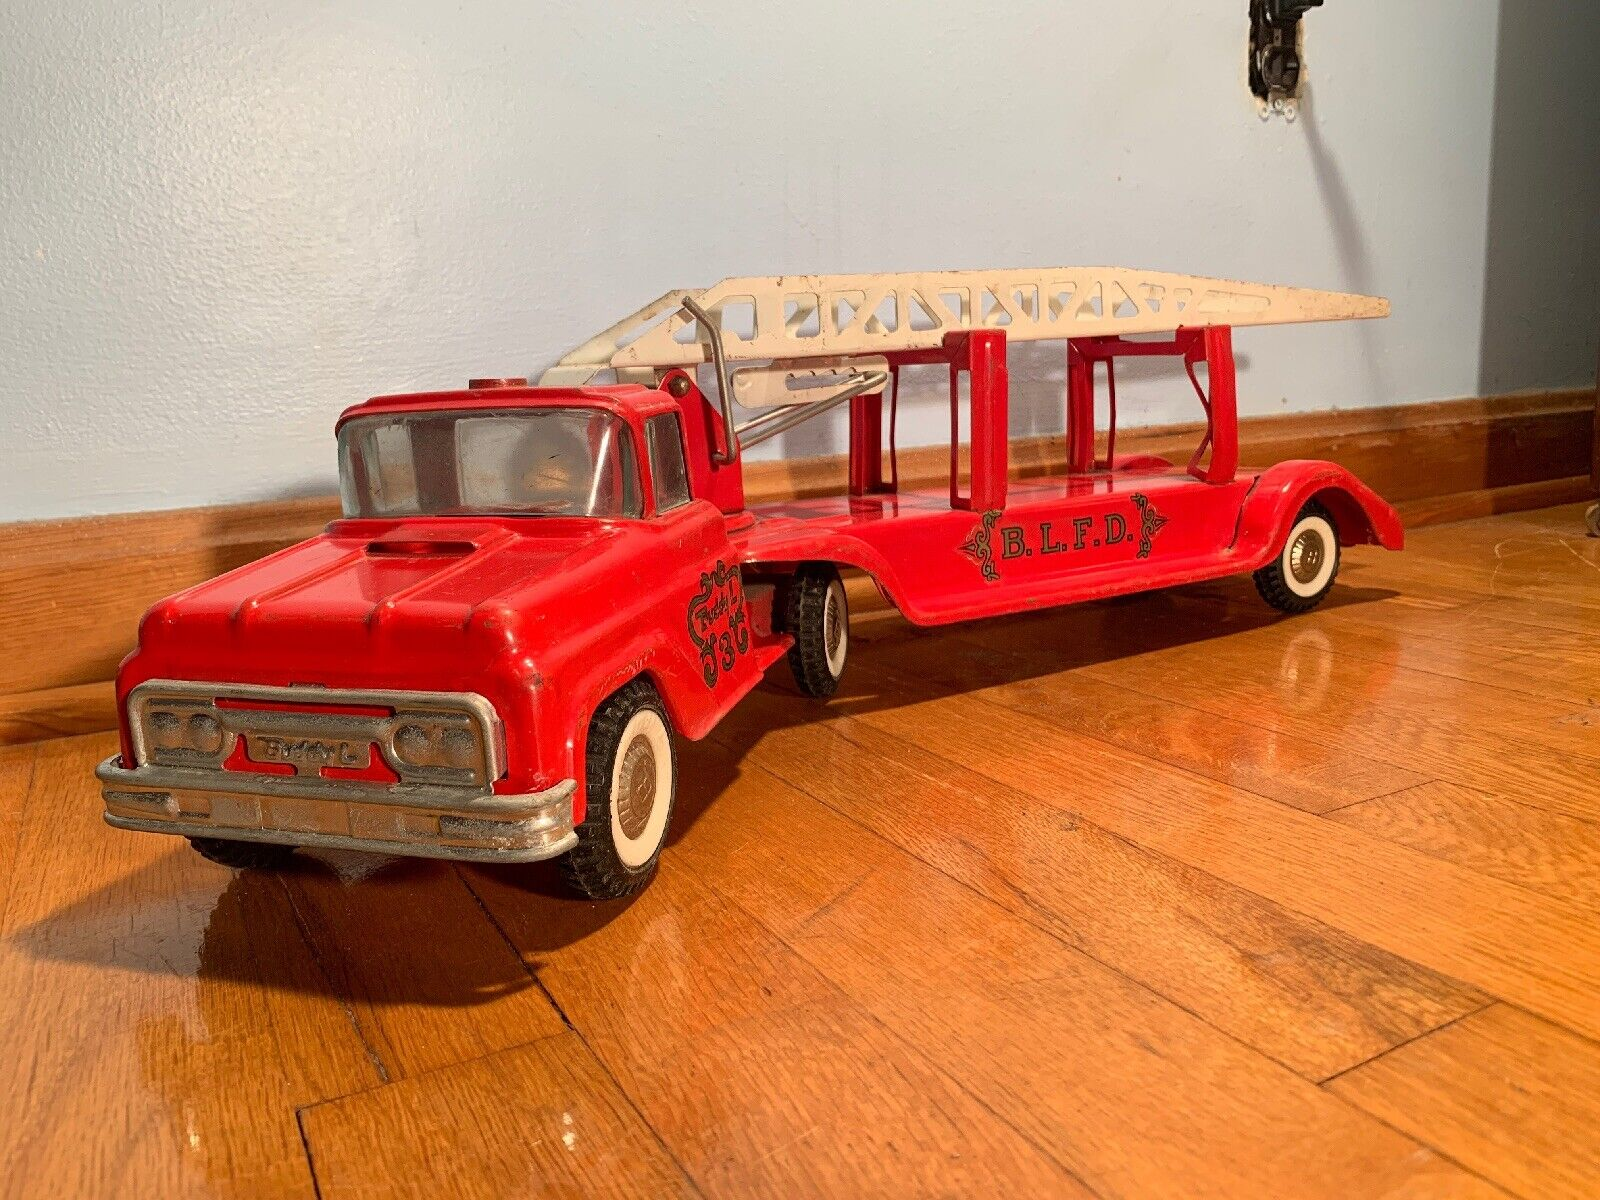 Late 1950s Vintage Buddy L No.3 Ladder Truck